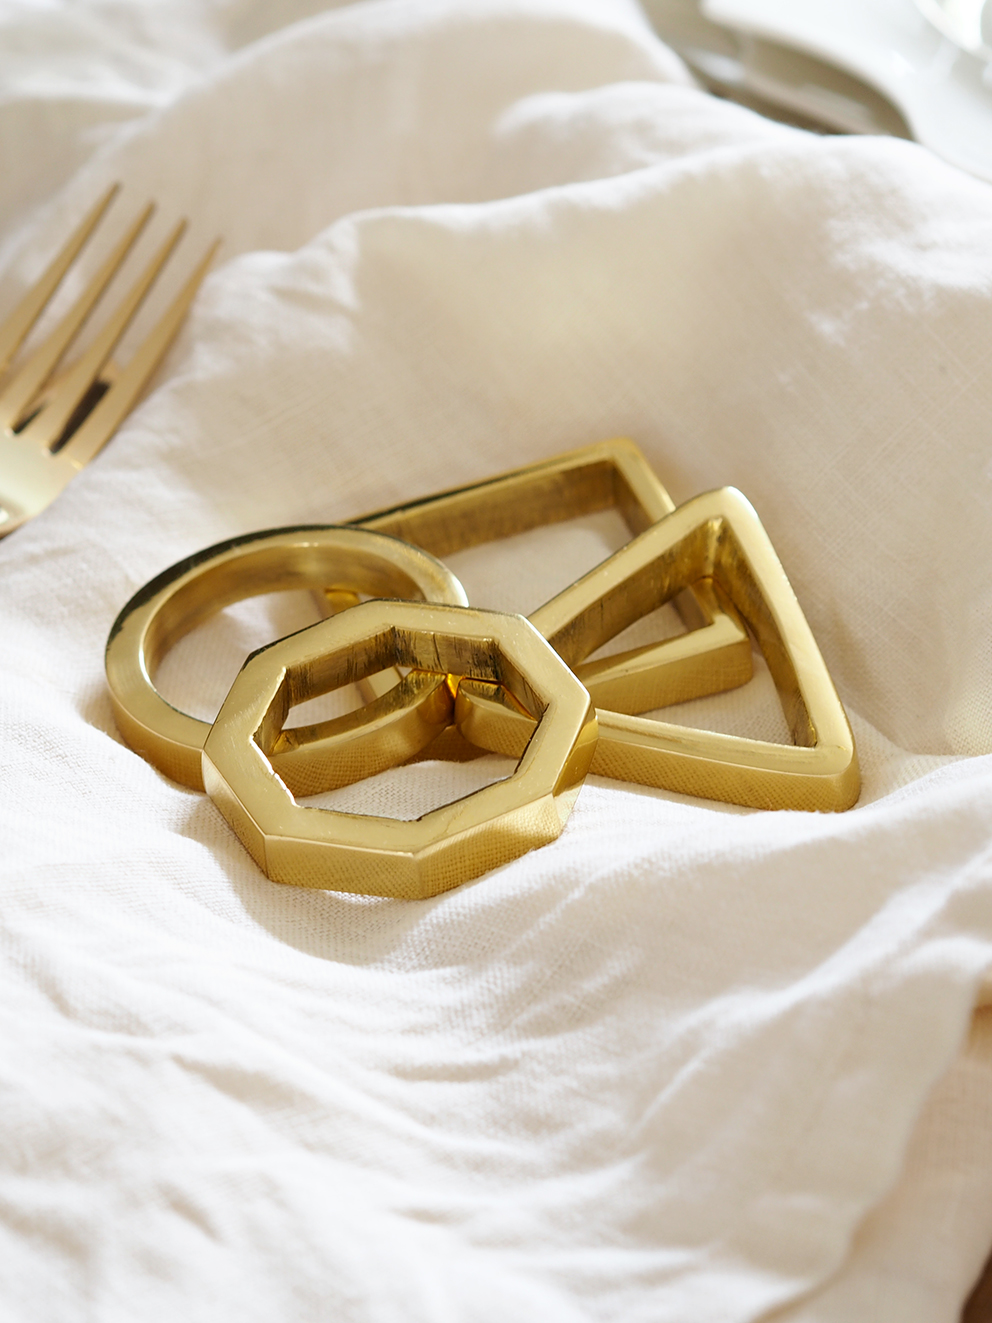 My Summer Dining Room - French For Pineapple Blog - close up of geometric brass napkin rings sitting on linen napkins